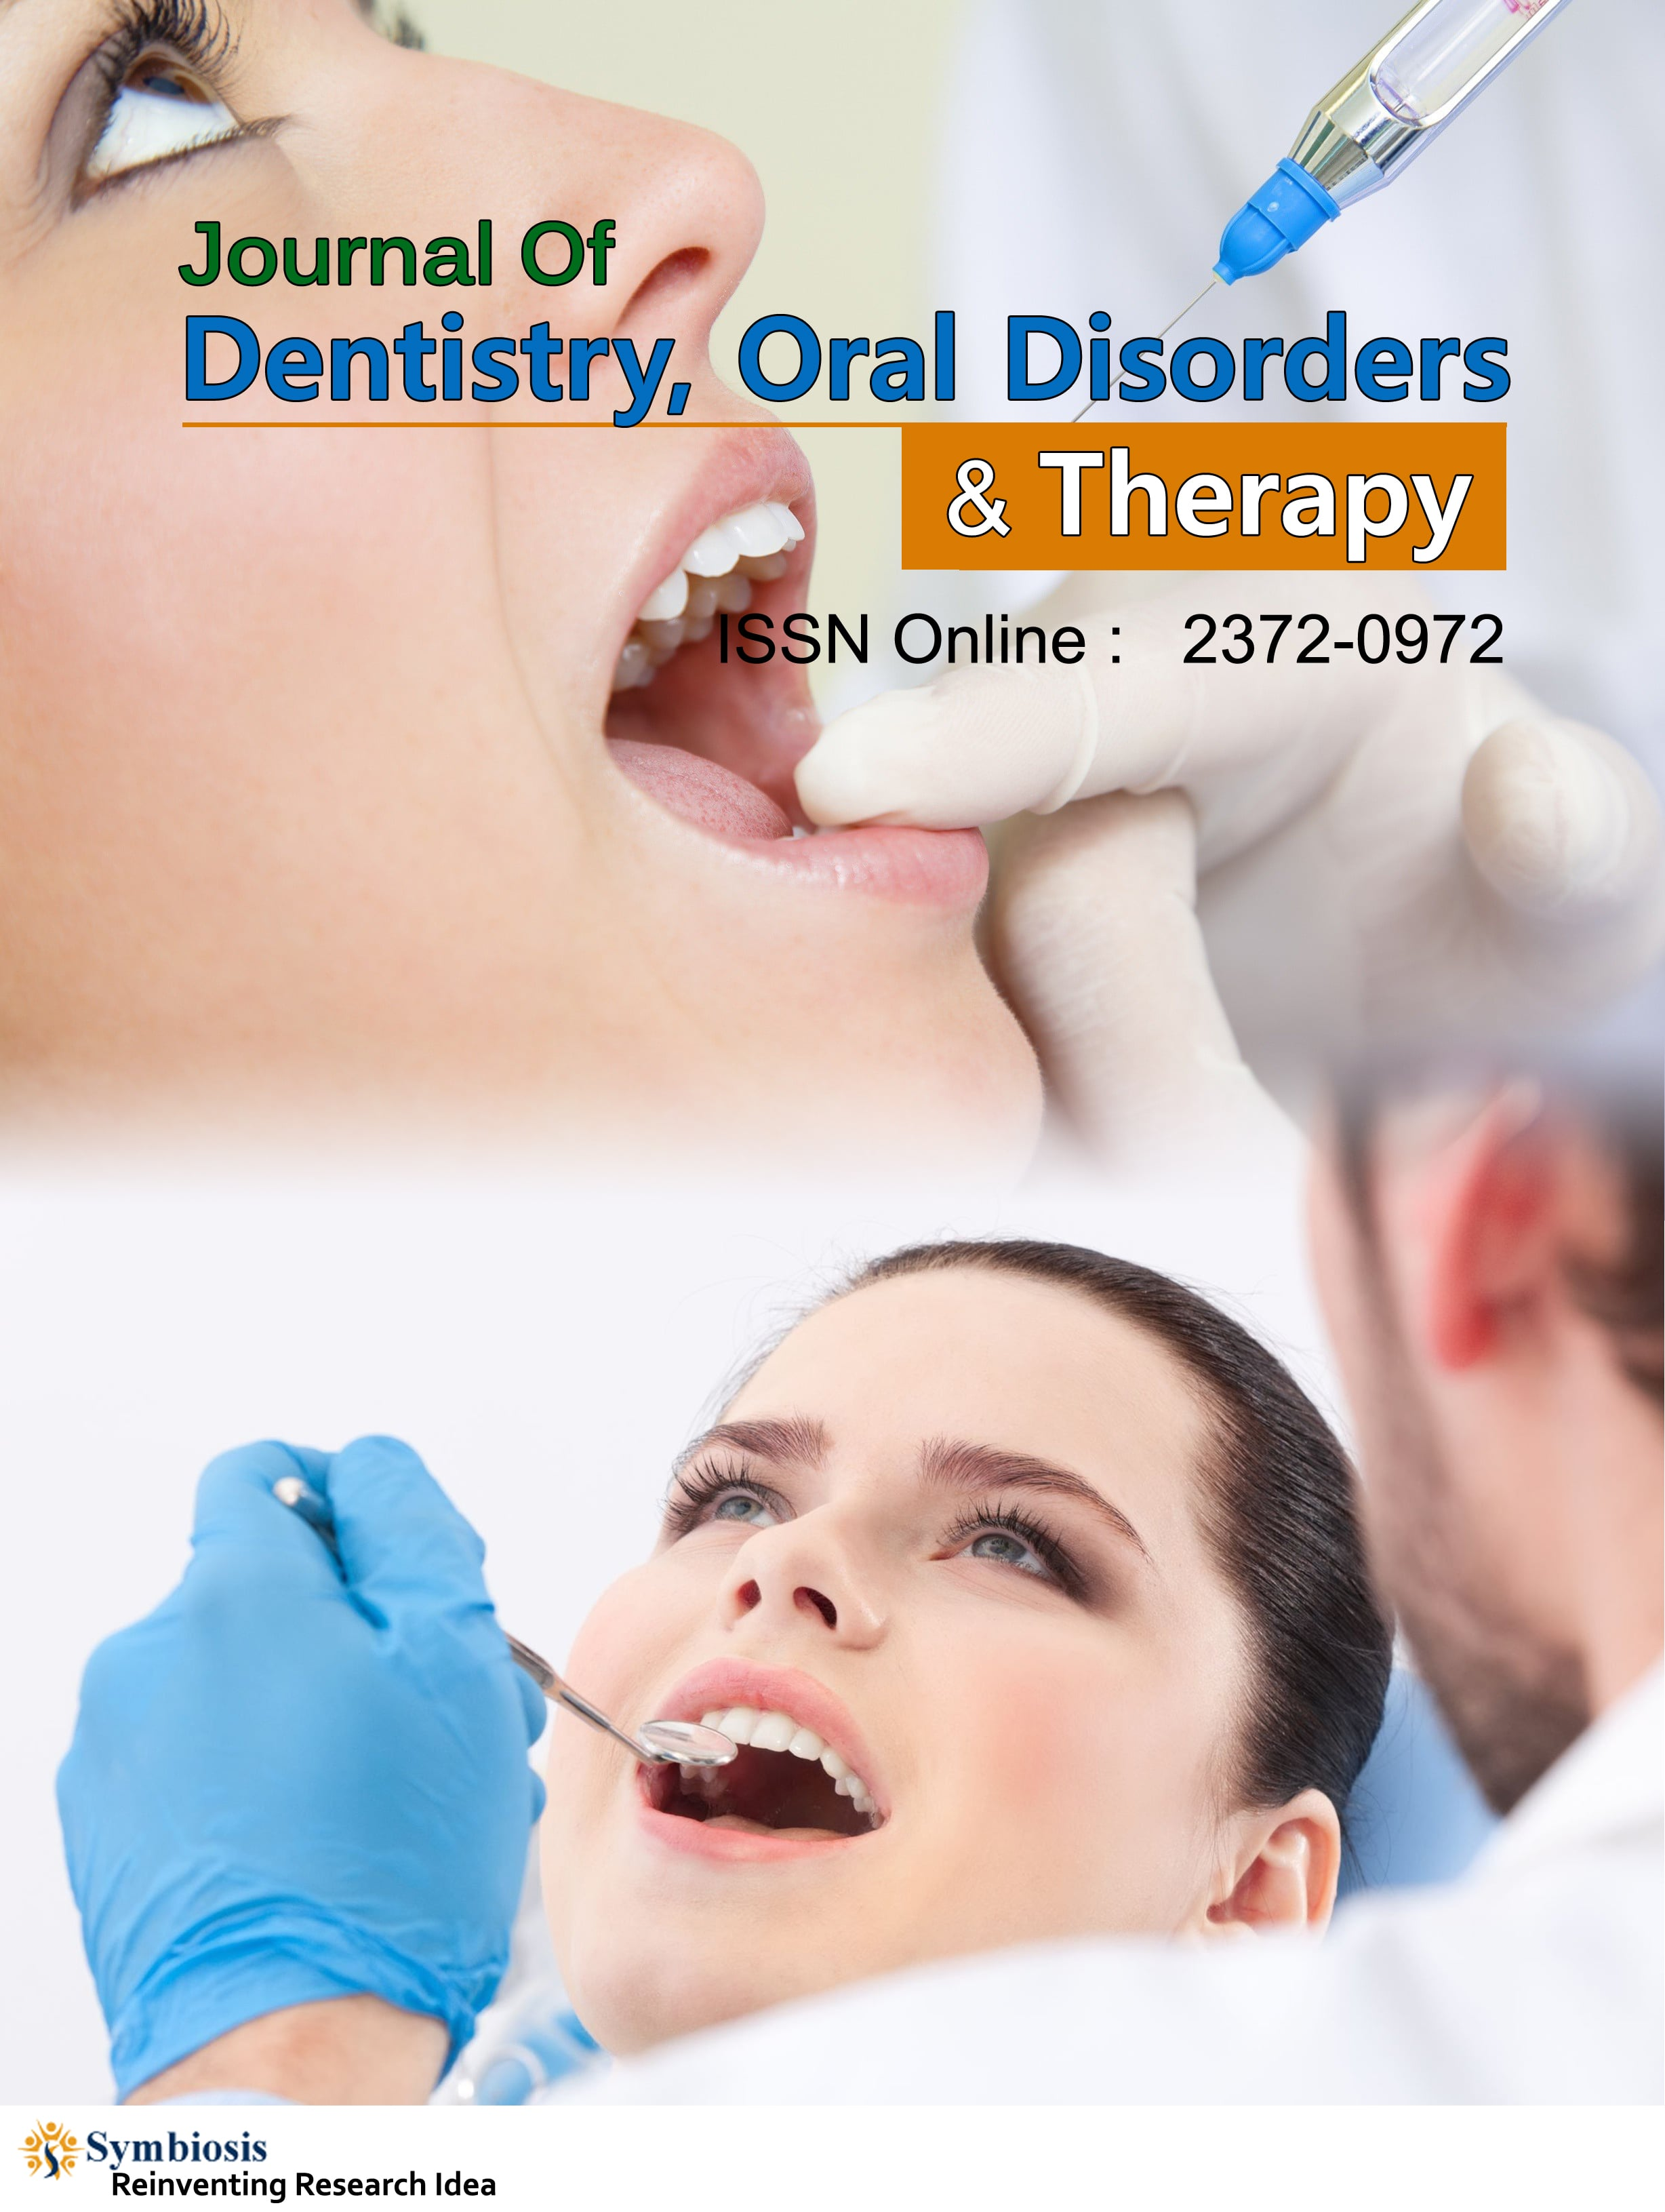 Journal of Dentistry, Oral Disorders & Therapy